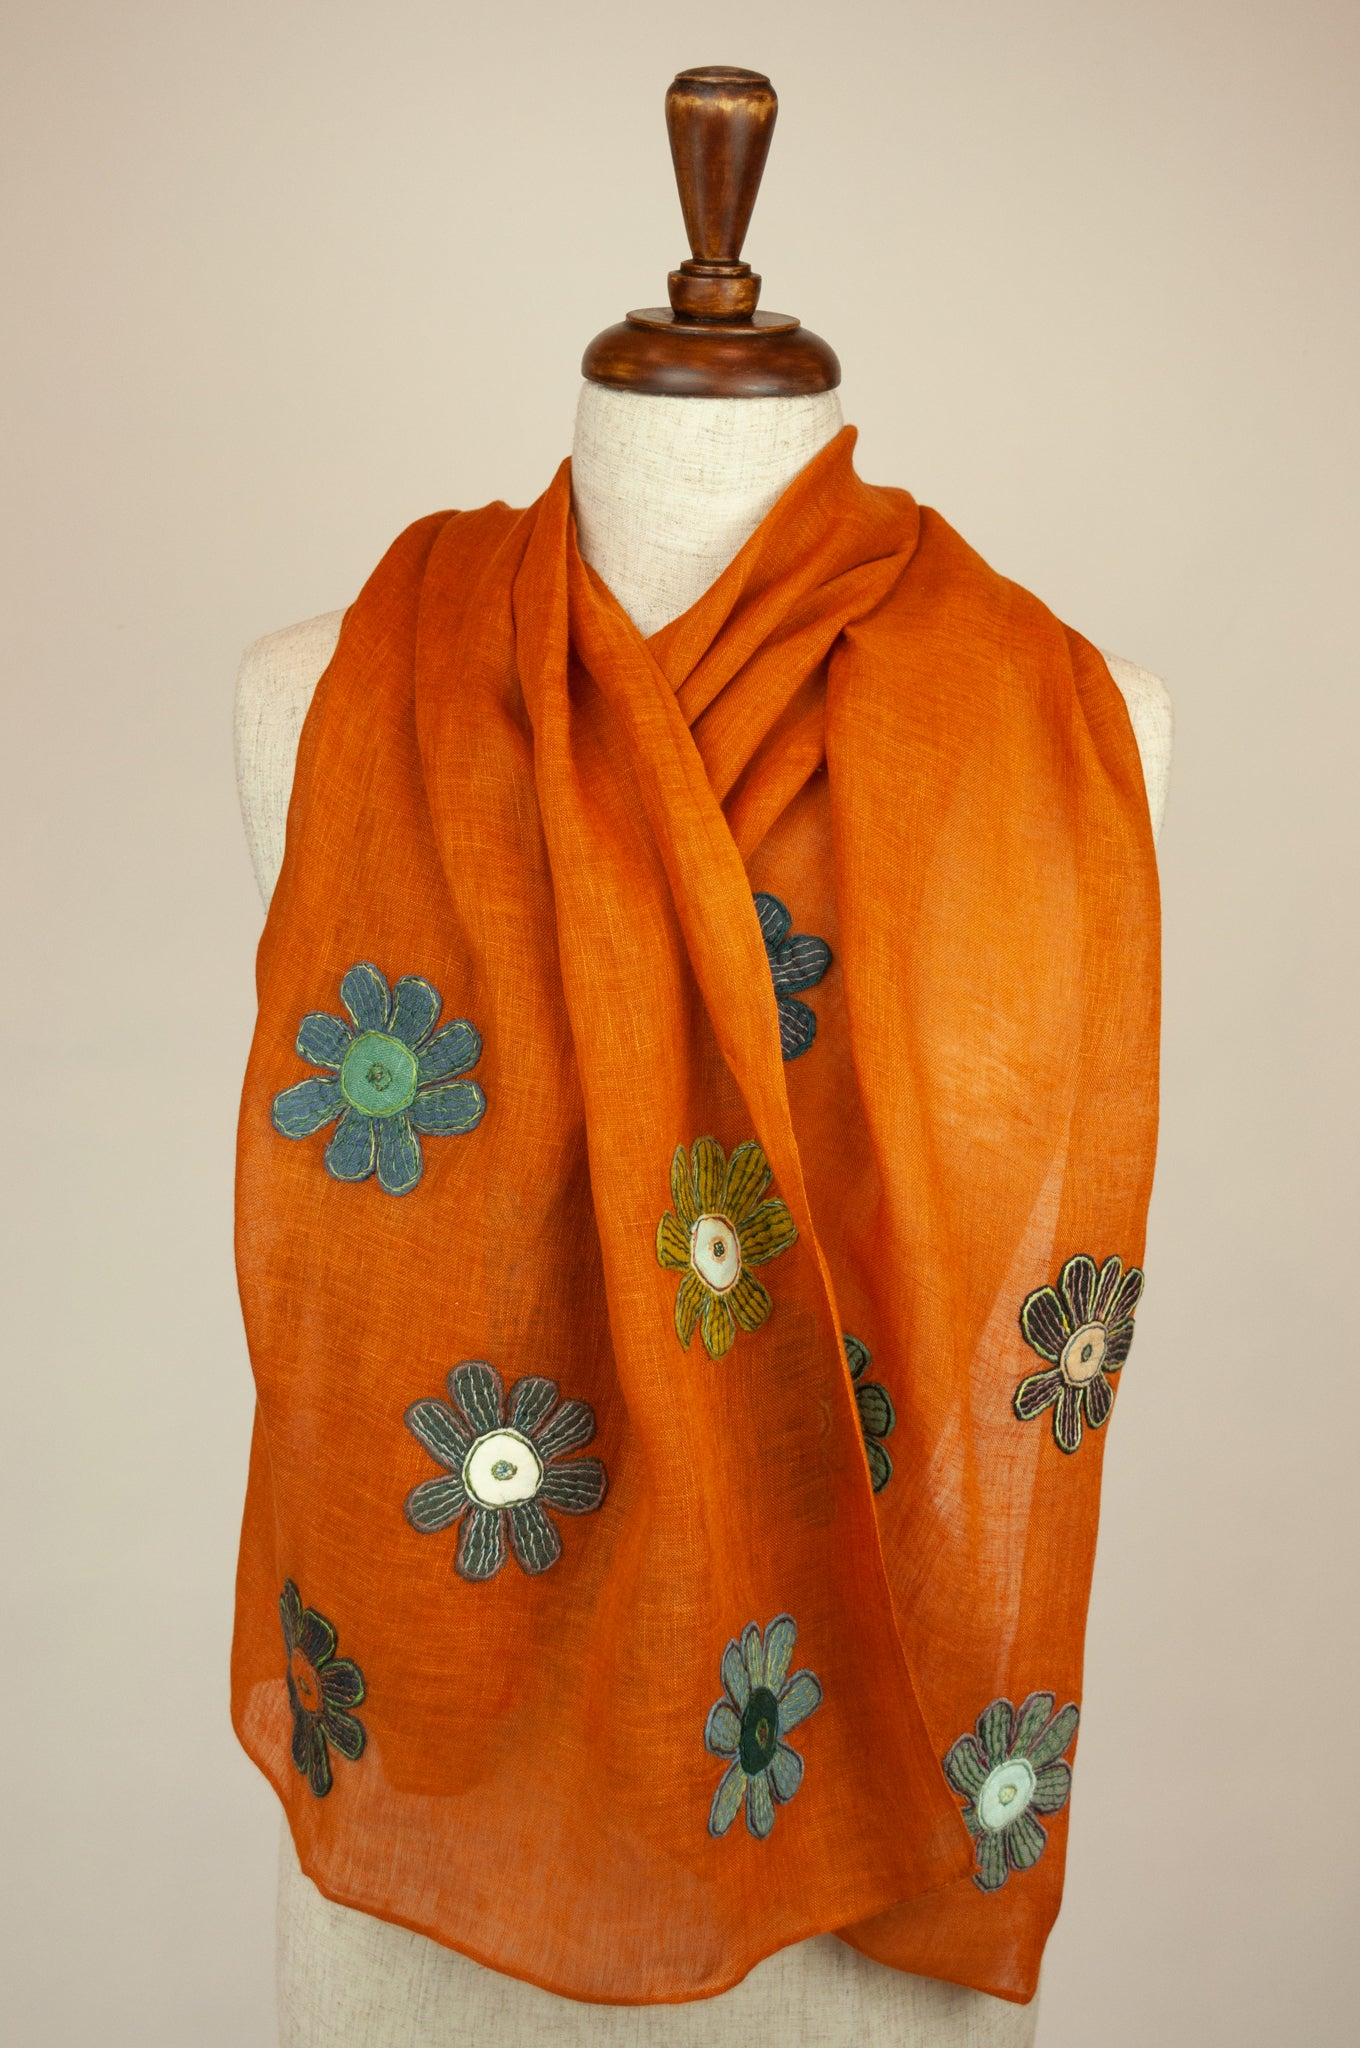 Sophie Digard scarf - Saffron embroidered flowers